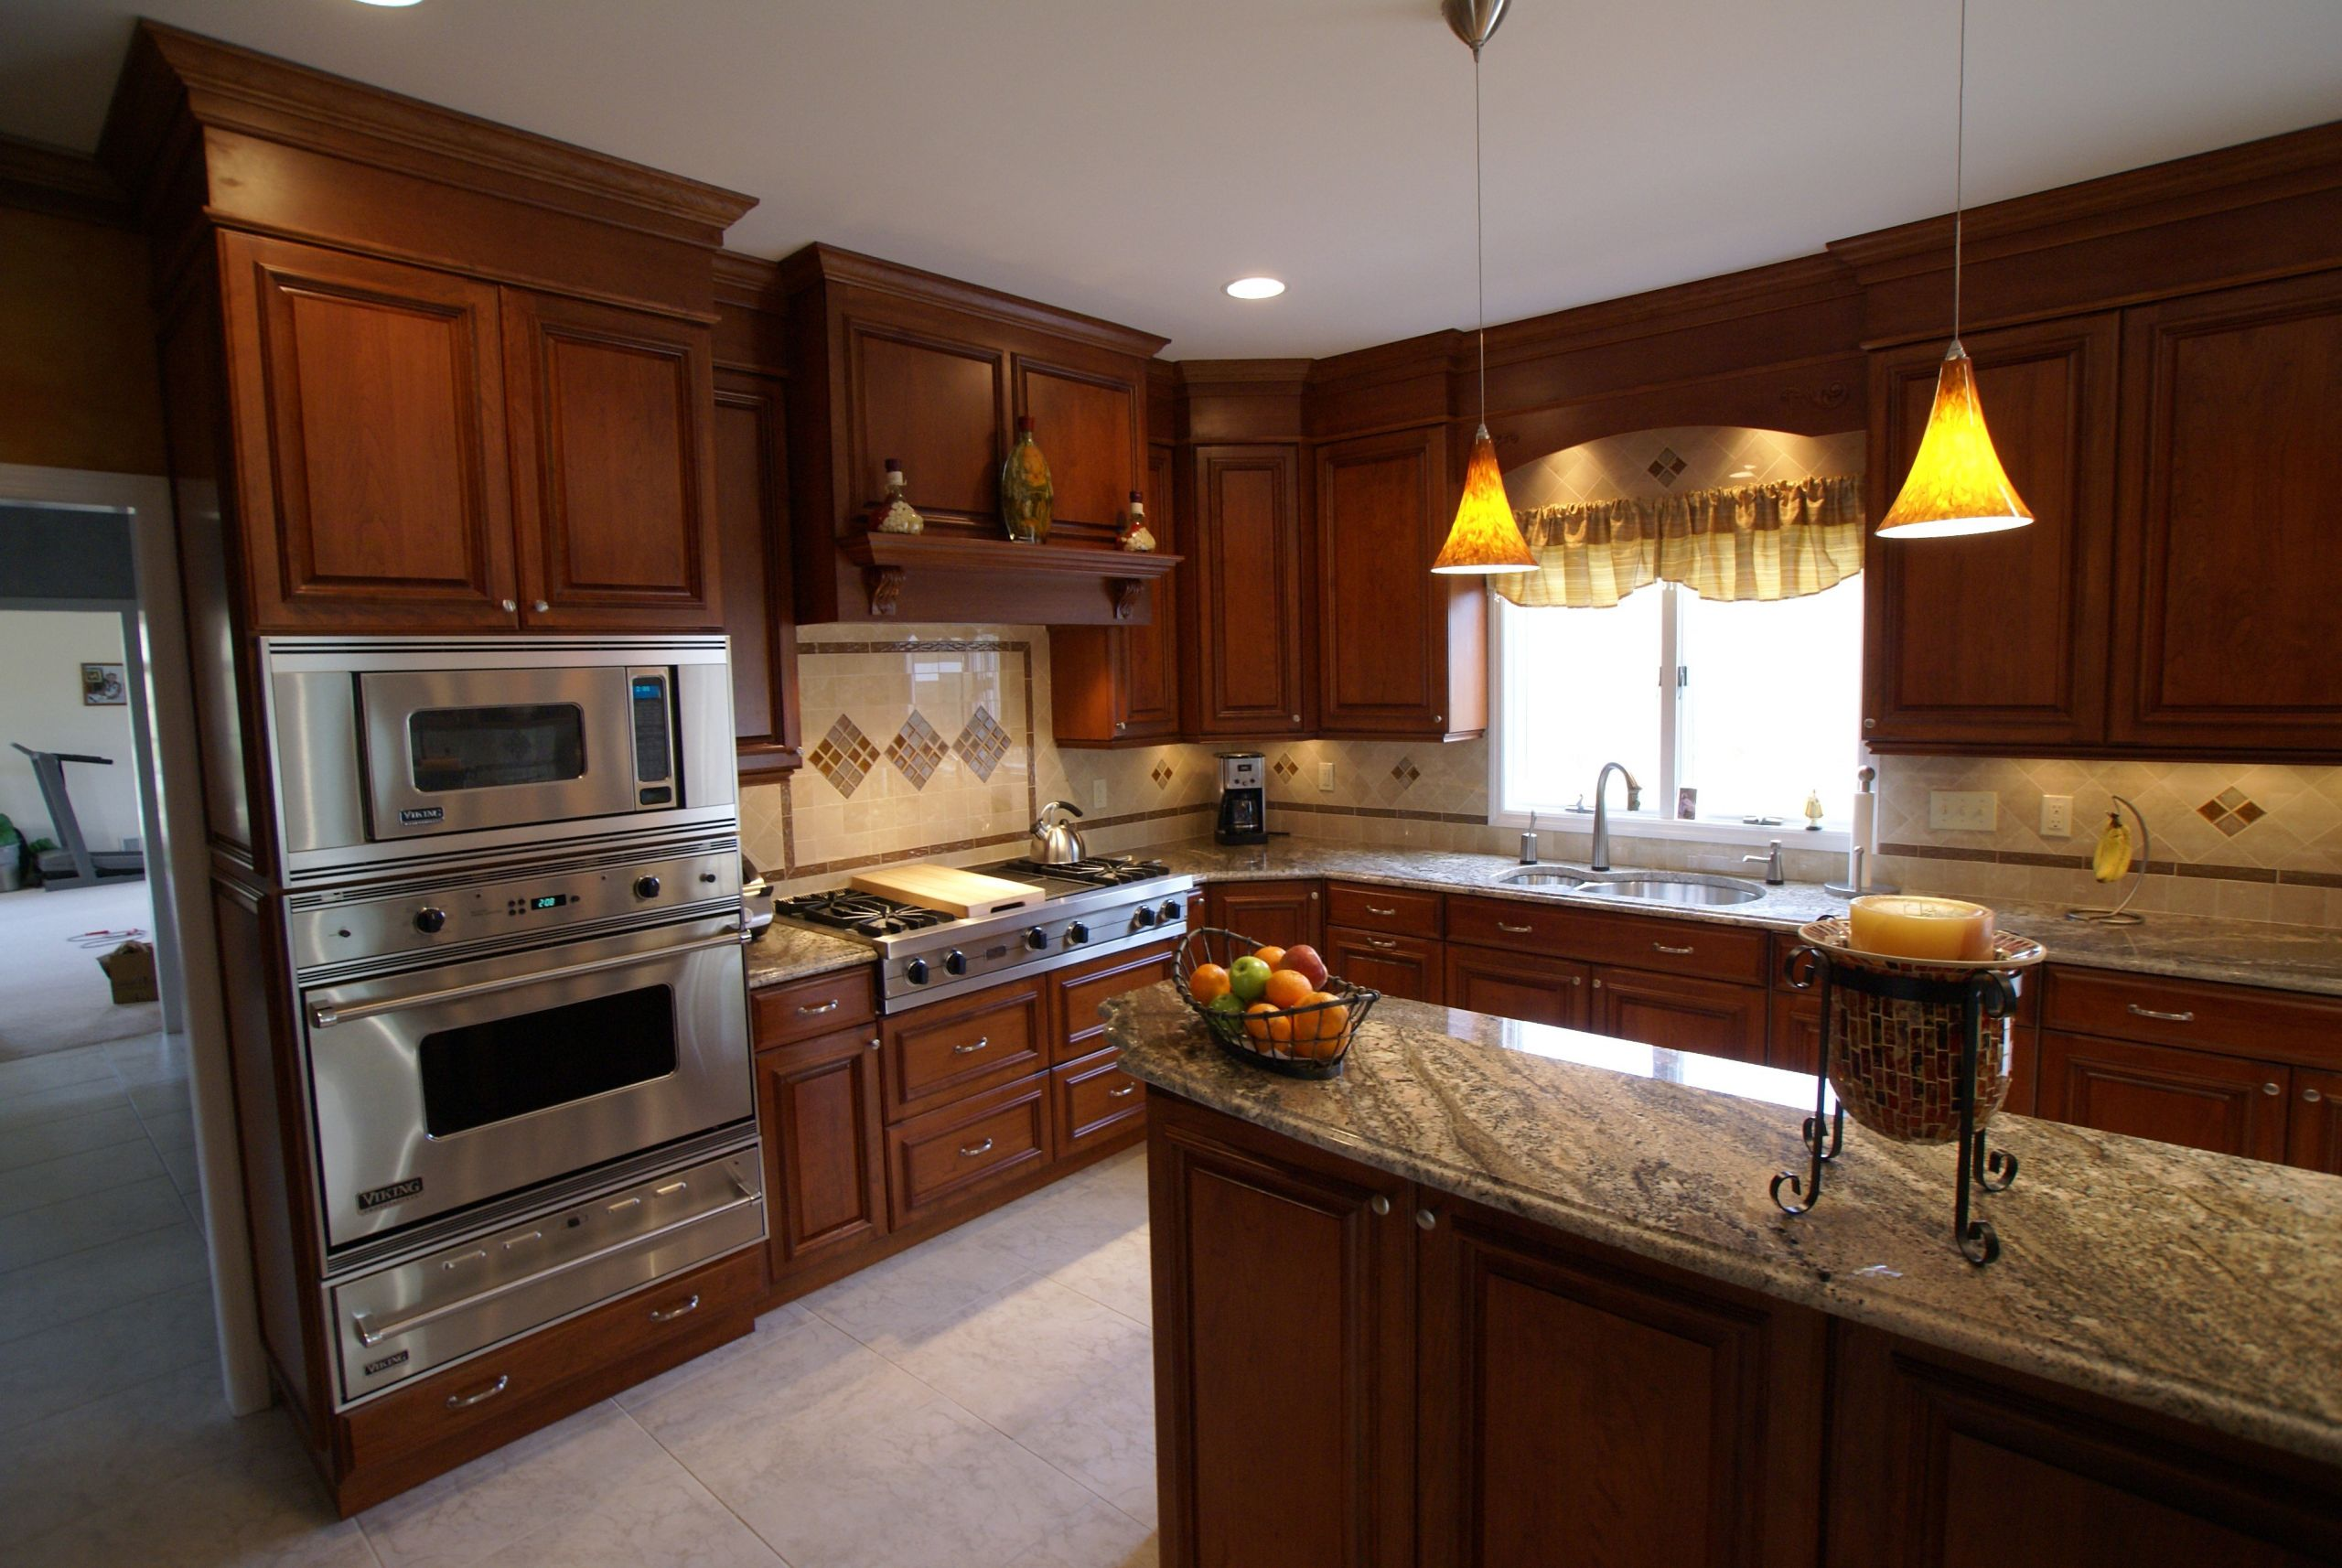 Kitchen Remodeling Ideas Pictures  Monmouth County Kitchen Remodeling Ideas to Inspire You